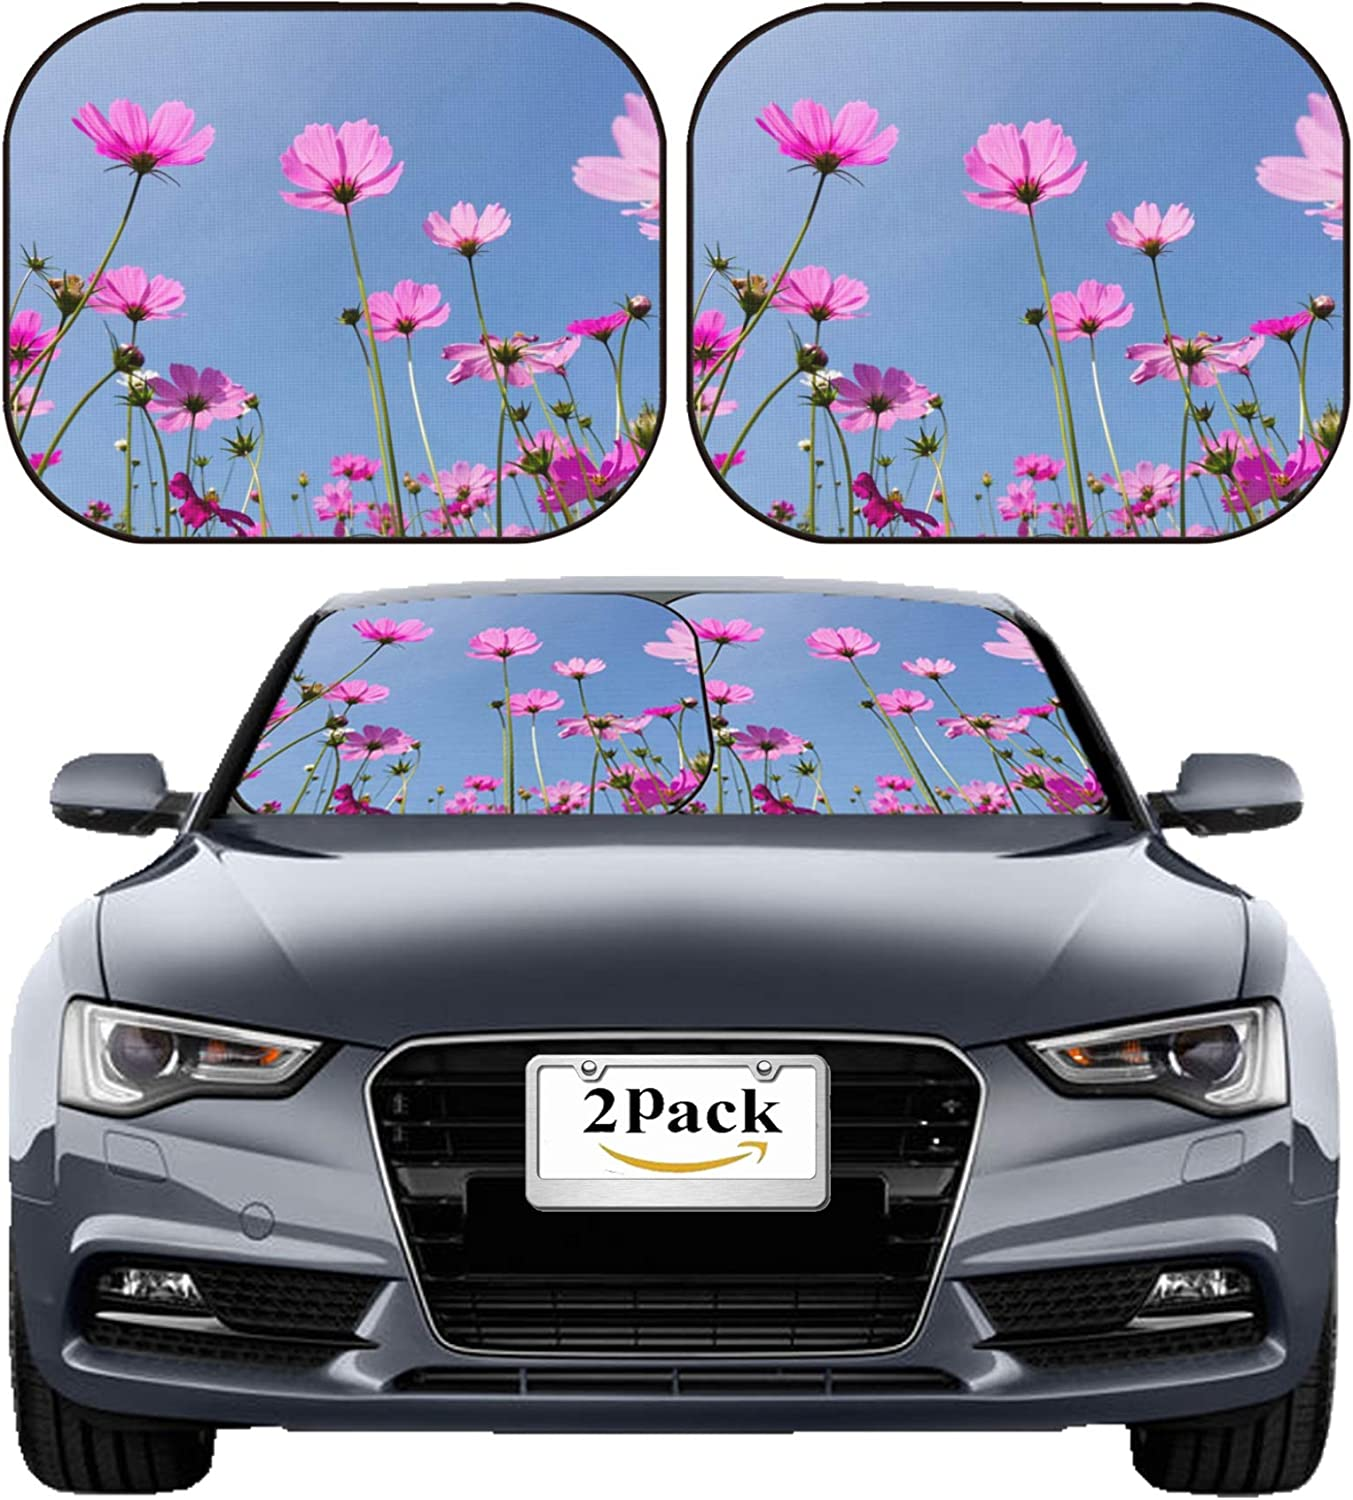 UV and Heat MSD Car Sun Shade Windshield Sunshade Universal Fit 2 Pack Protect Car Interior Block Sun Glare Image ID: 27079051 Purple Flowers againts with Blue Sky and Sunlight